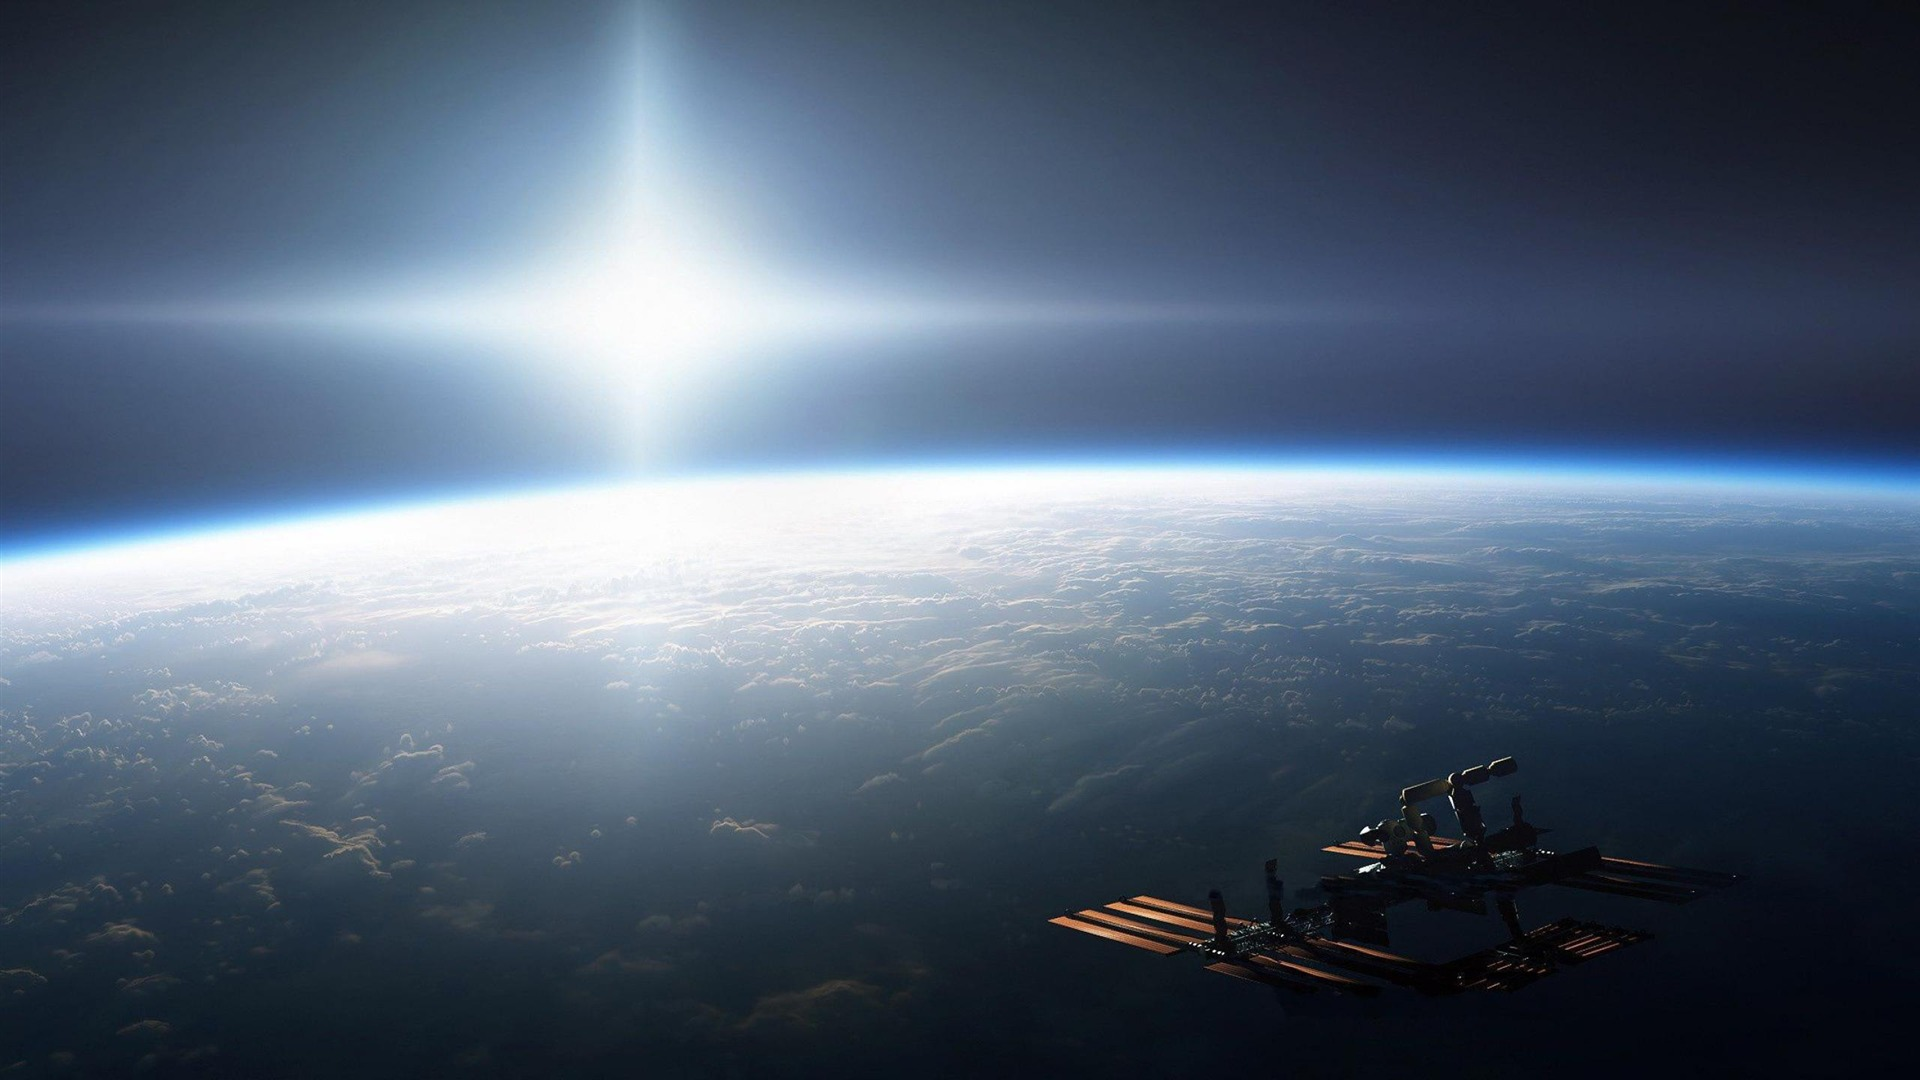 Estación Espacial Hd Space Wallpapers Avance 10wallpapercom